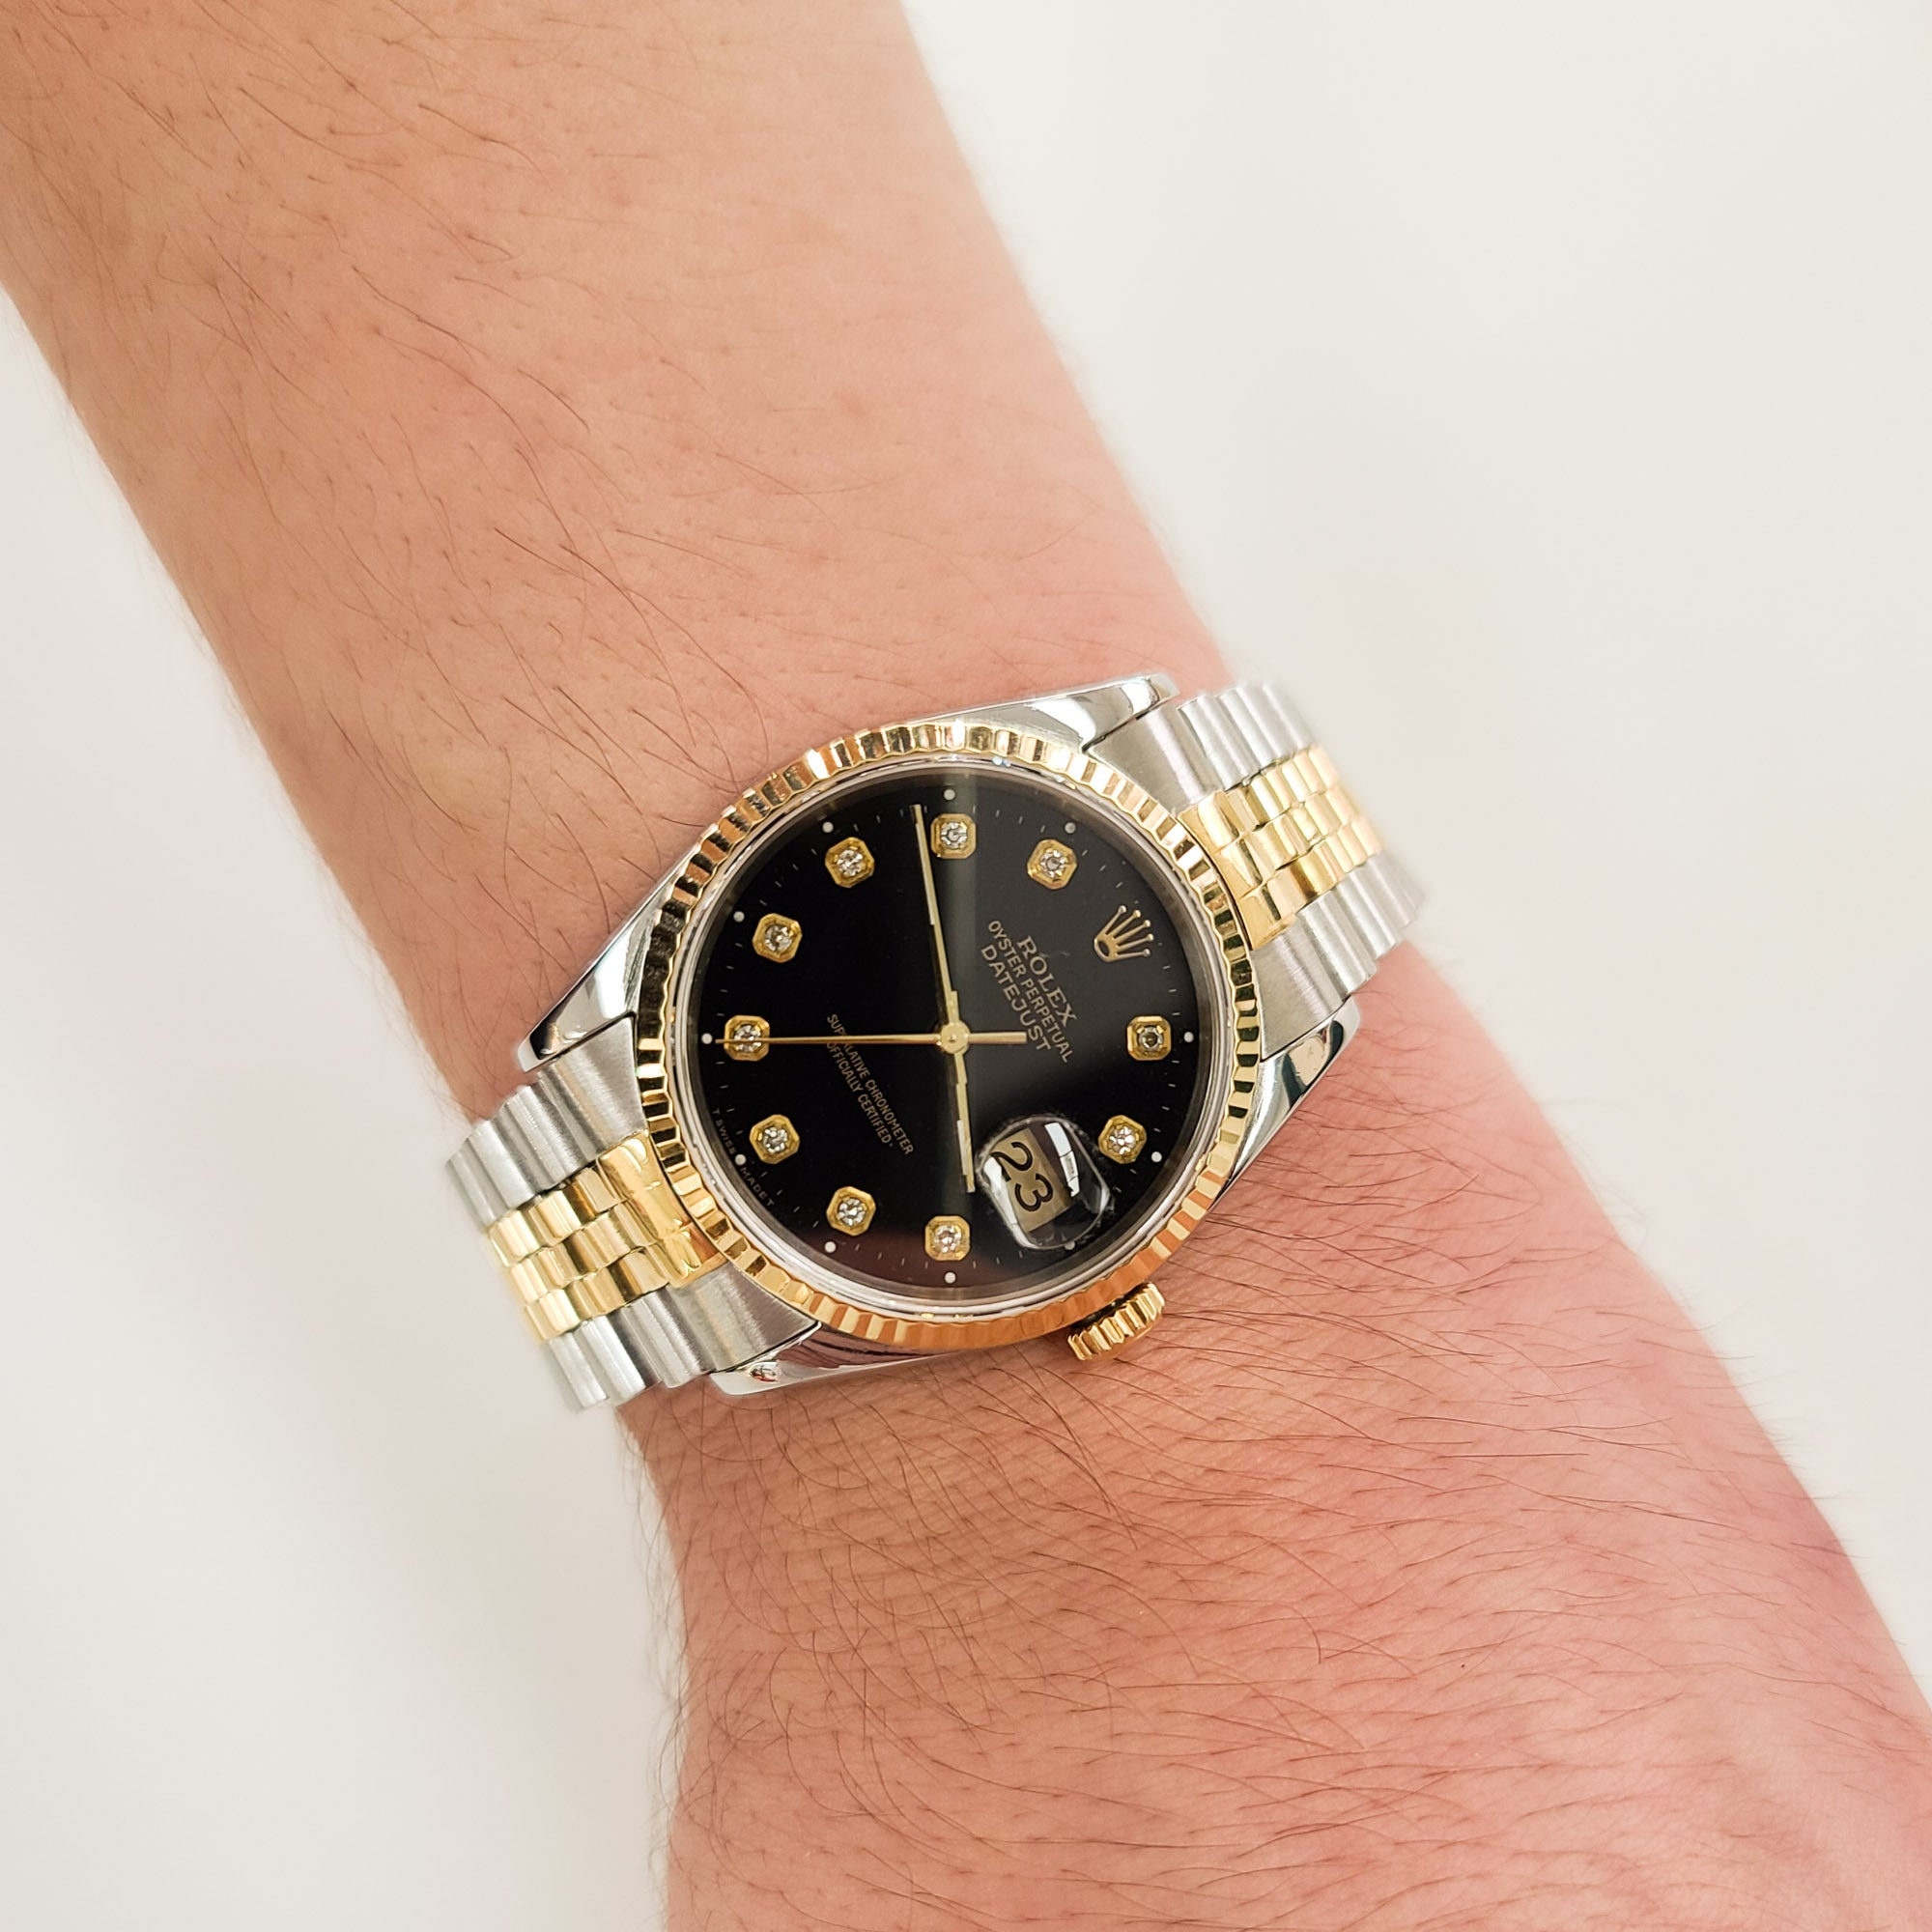 Rolex Datejust 36MM with a Jubilee Band